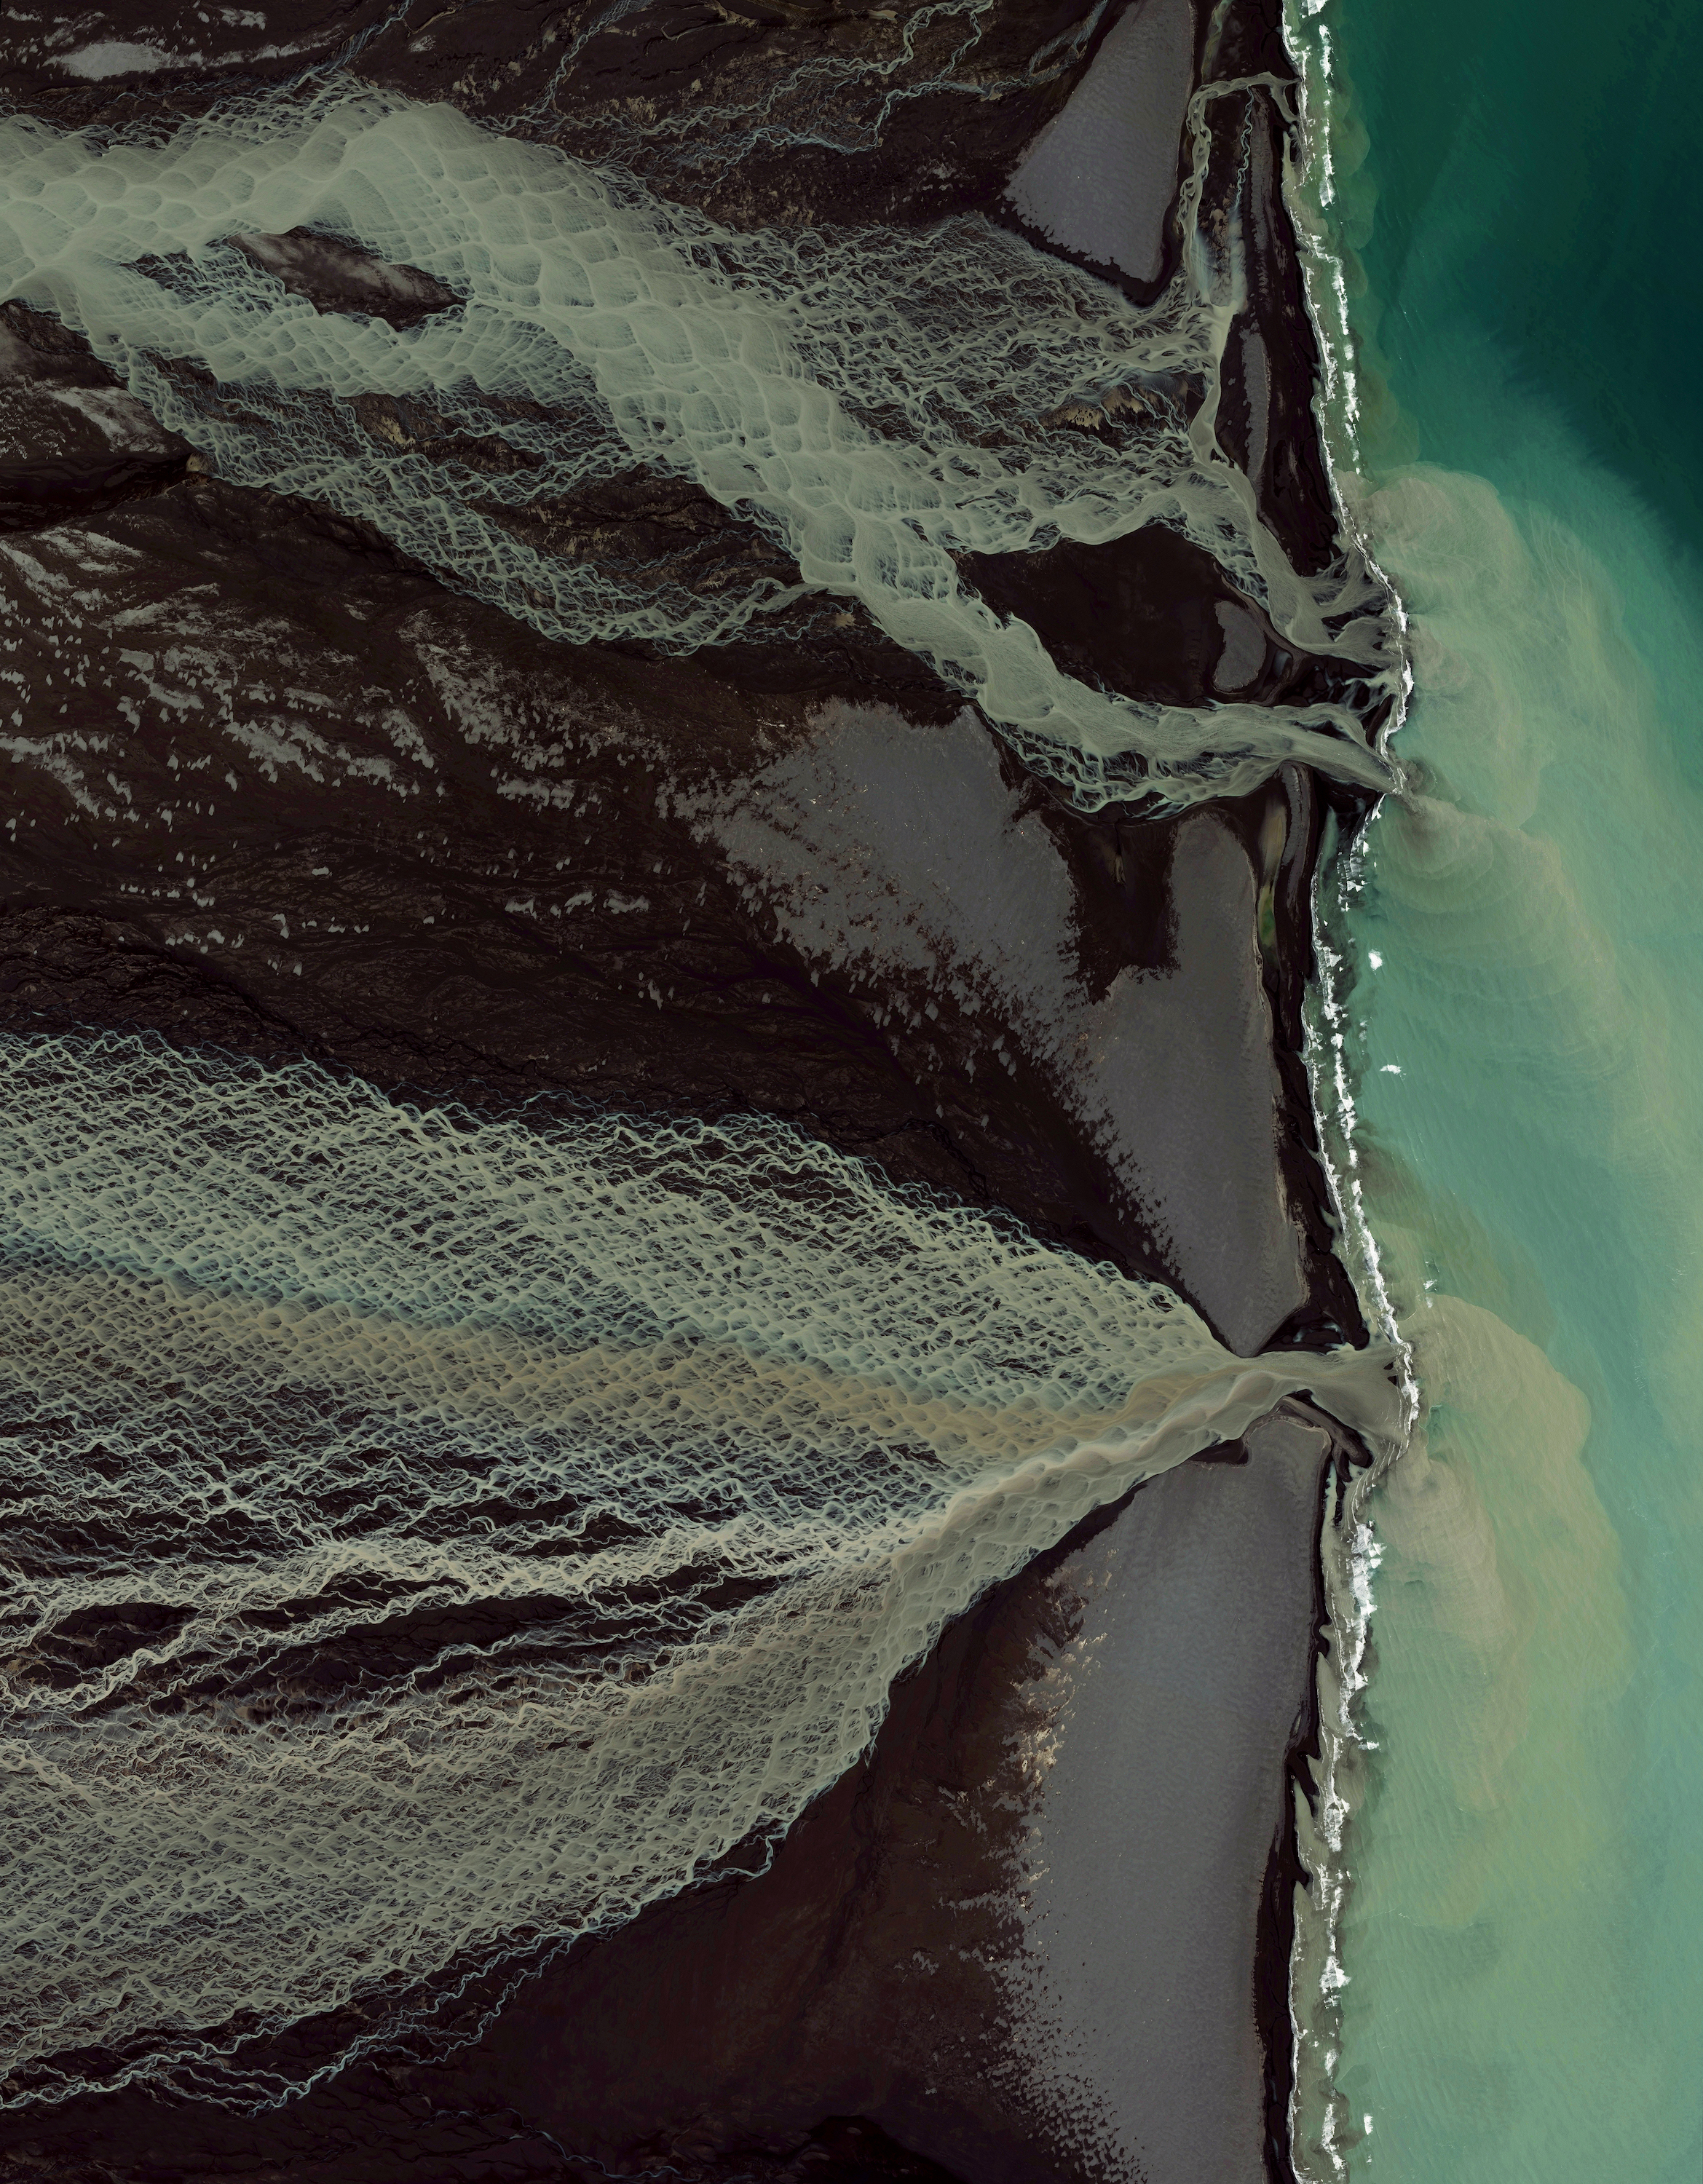 9/8/2016  Glacial melt  Skafta River, Iceland  63.7751116, -18.09628    Glacial melting and flooding occurs every year by the Skafta River in Iceland. As the water travels down towards the North Atlantic Ocean, incredible patterns are created on the hillsides. Rising lava, steam vents, or newly opened hot springs can all cause this rapid ice melt, leading to a sizable release of water that picks up sediment as it flows down from the glaciers.